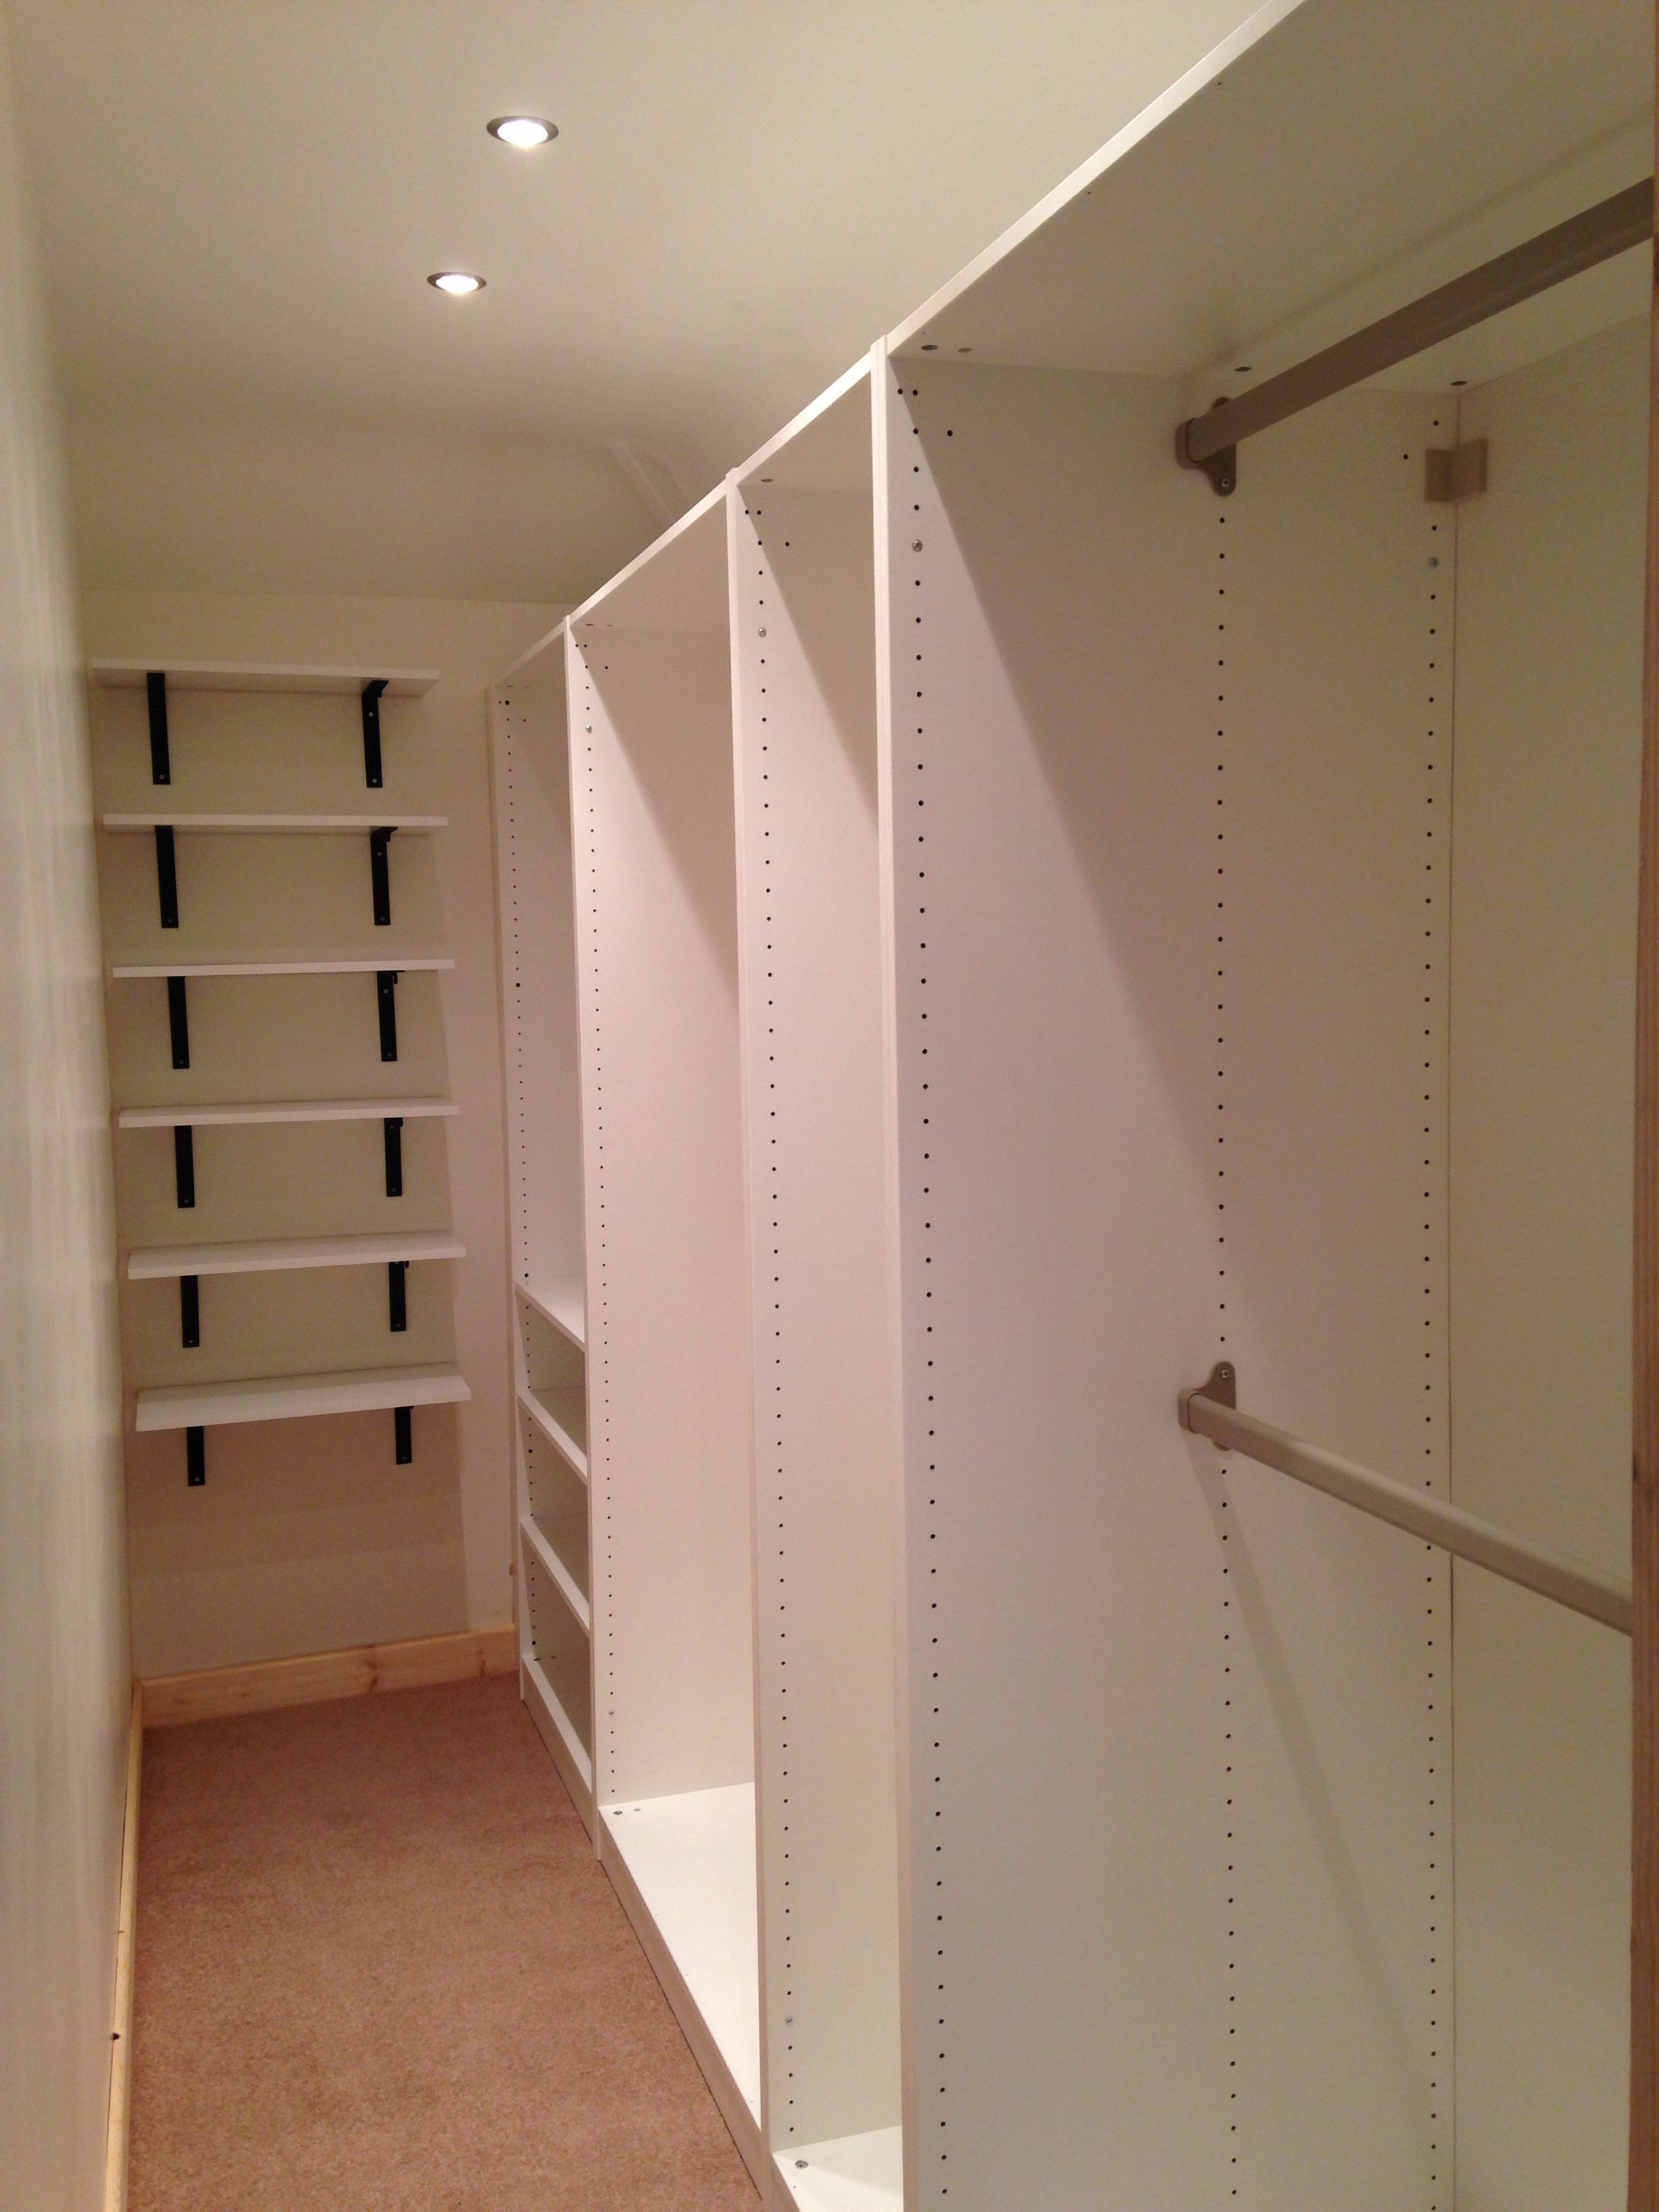 Small Walk In Wardrobe Using Ikea Pax Wardrobes Shelving Wardrobe Room Small Dressing Rooms Walk In Closet Design